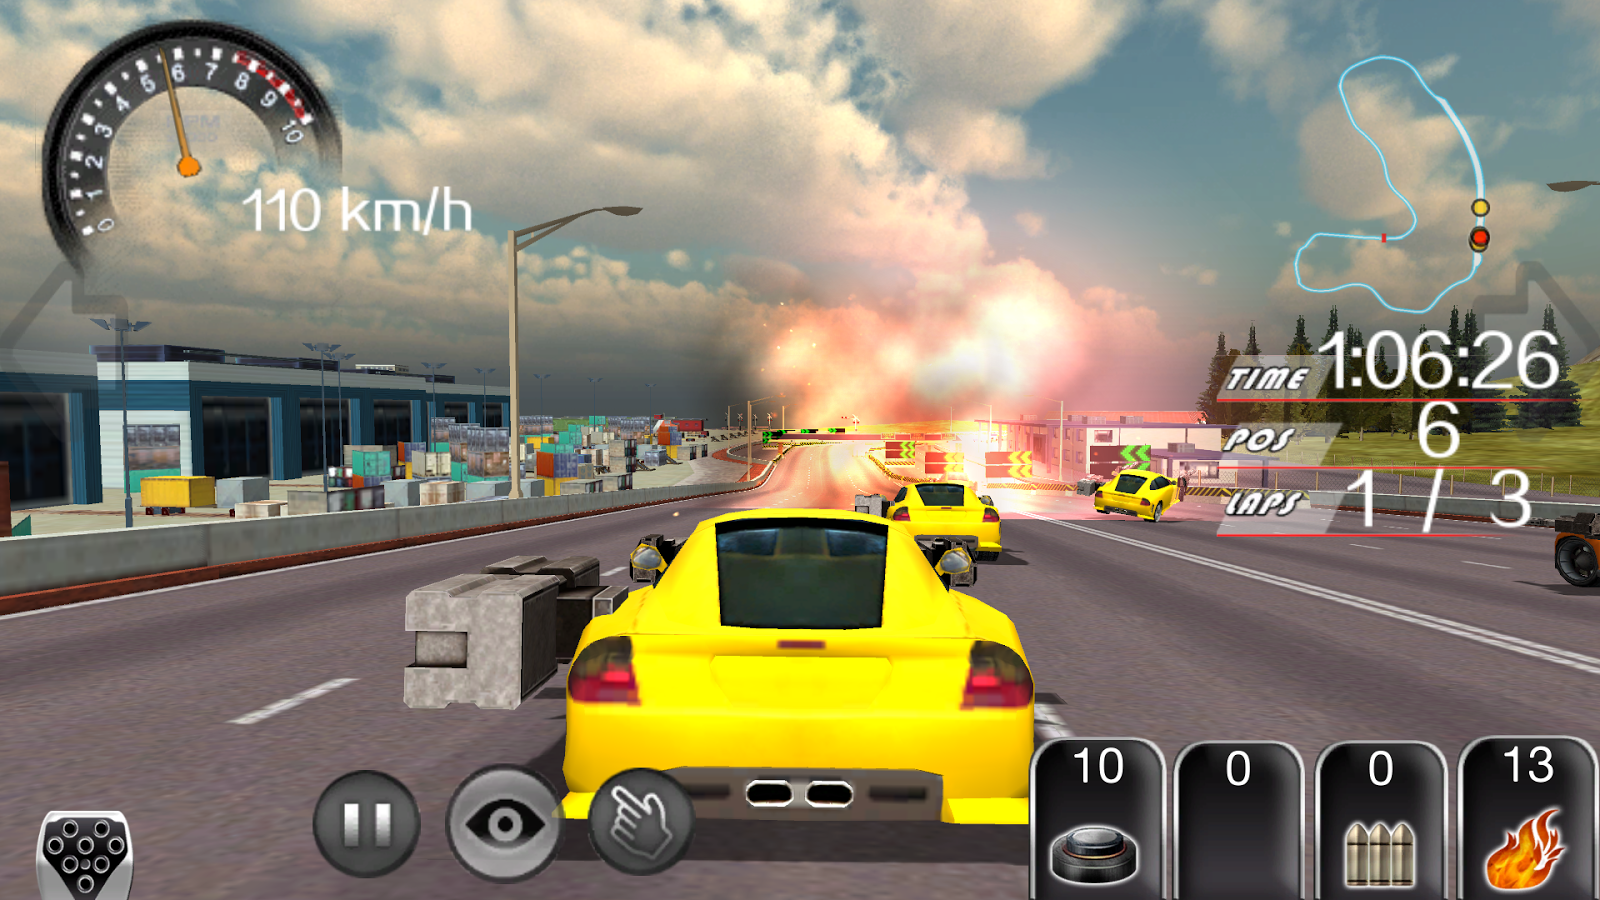 Armored car racing game android apps on google play for Play motor racing games